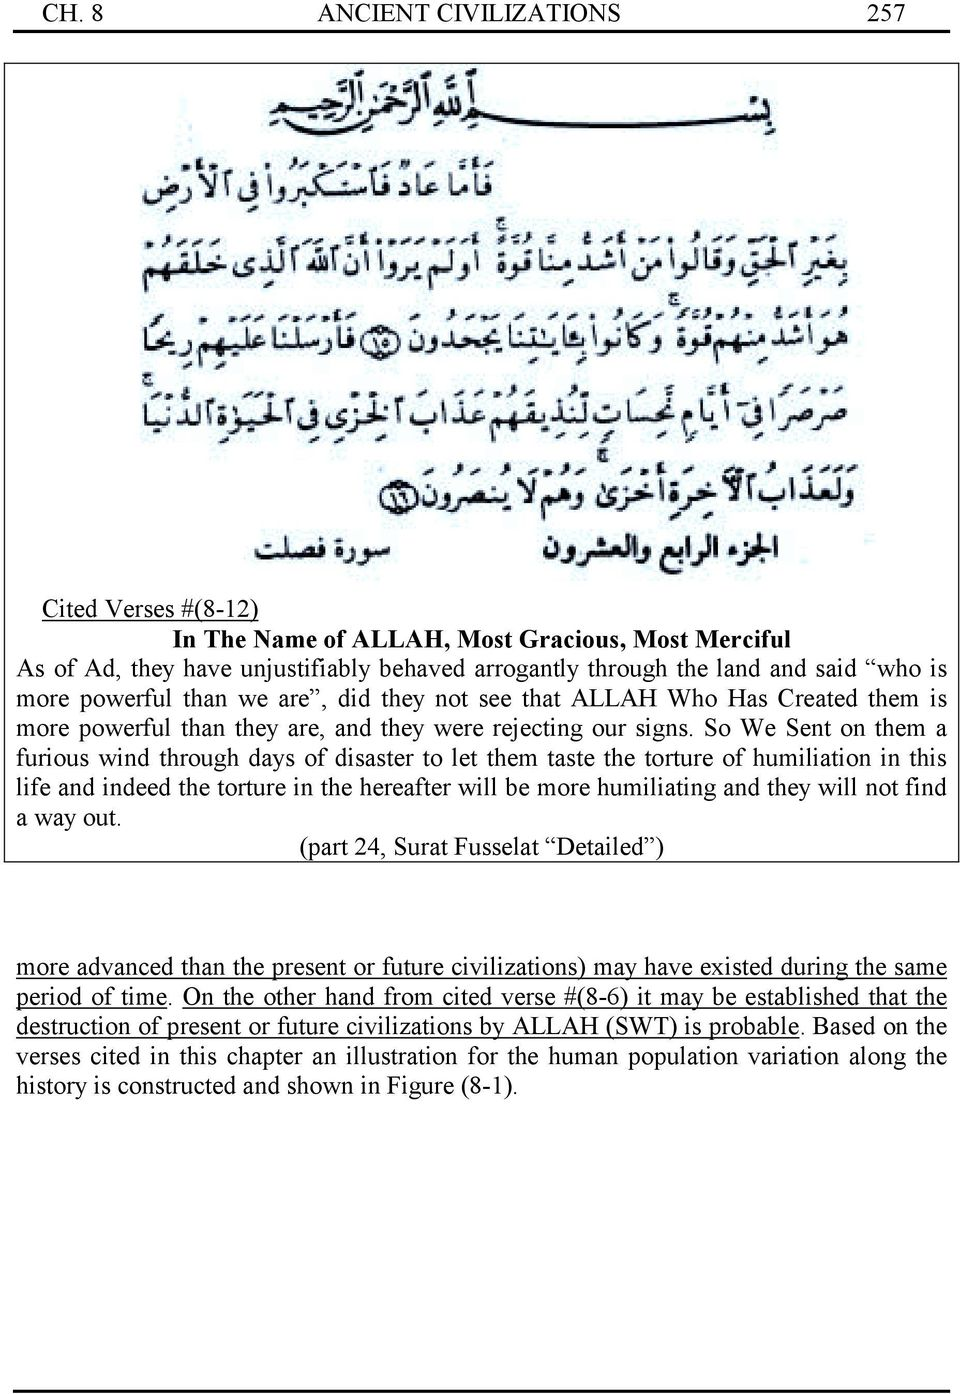 So We Sent on them a furious wind through days of disaster to let them taste the torture of humiliation in this life and indeed the torture in the hereafter will be more humiliating and they will not